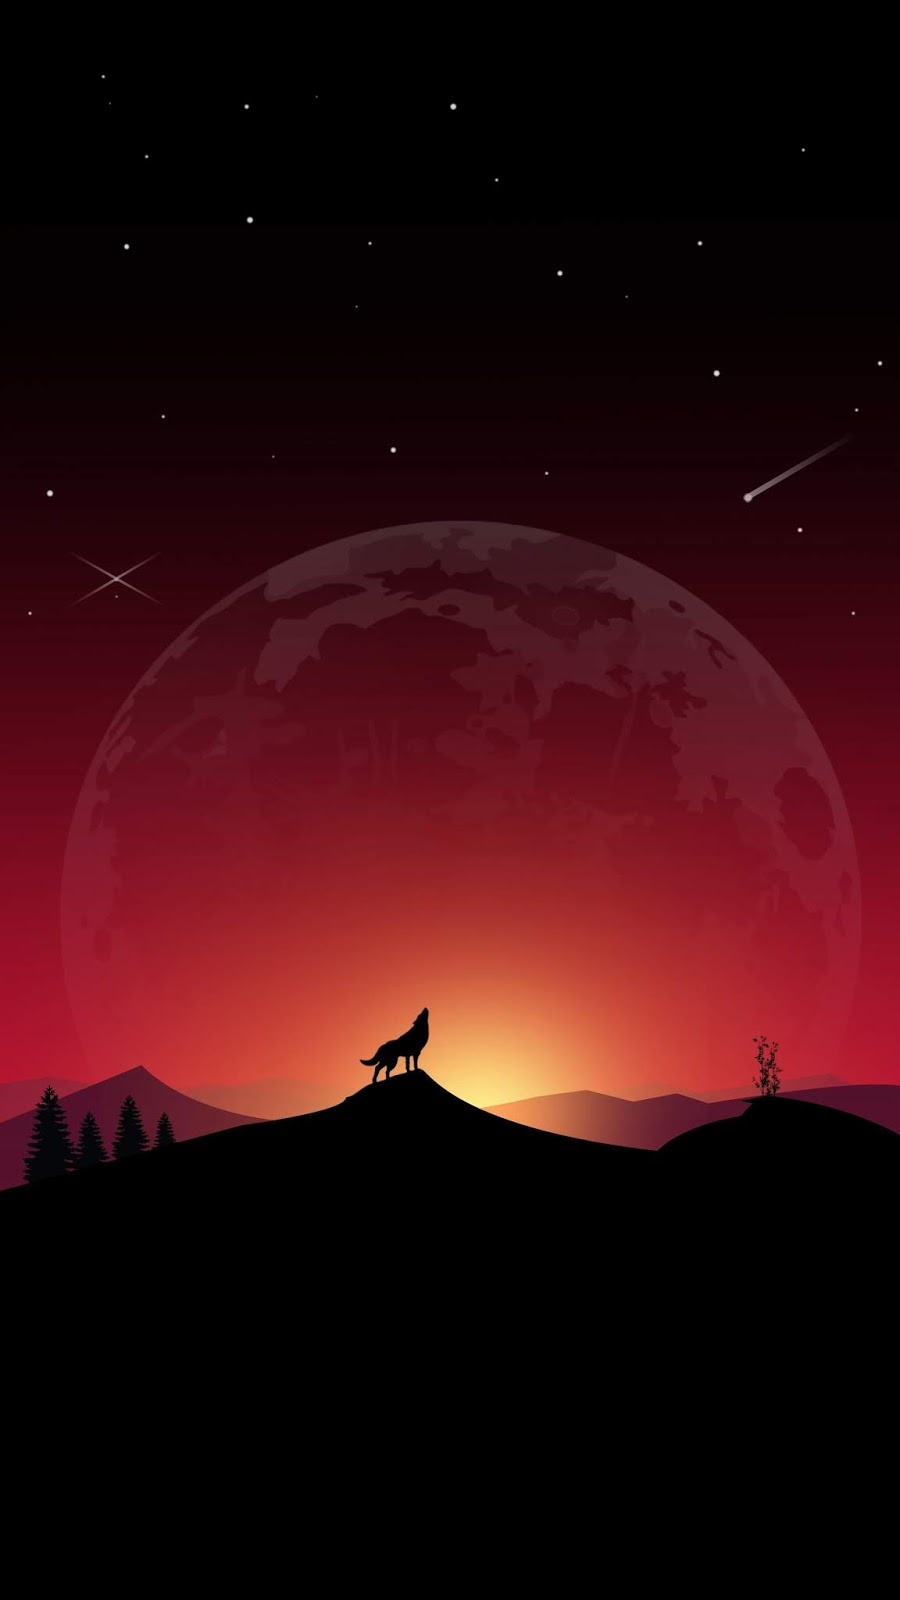 Wolf howling in the night